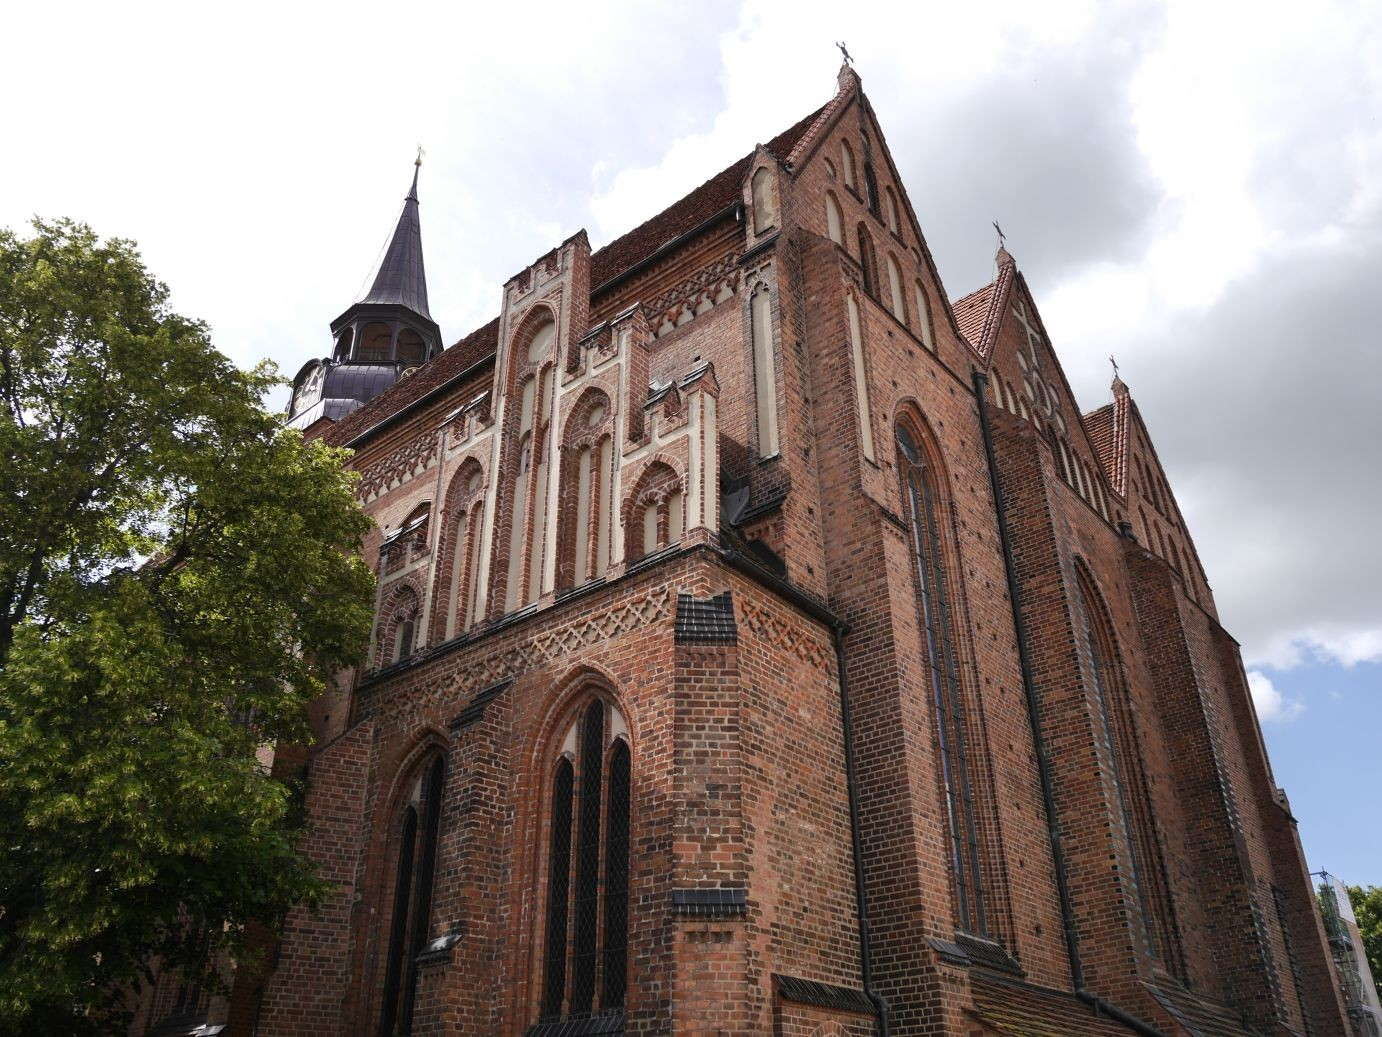 Kirche St. Marien in Güstrow